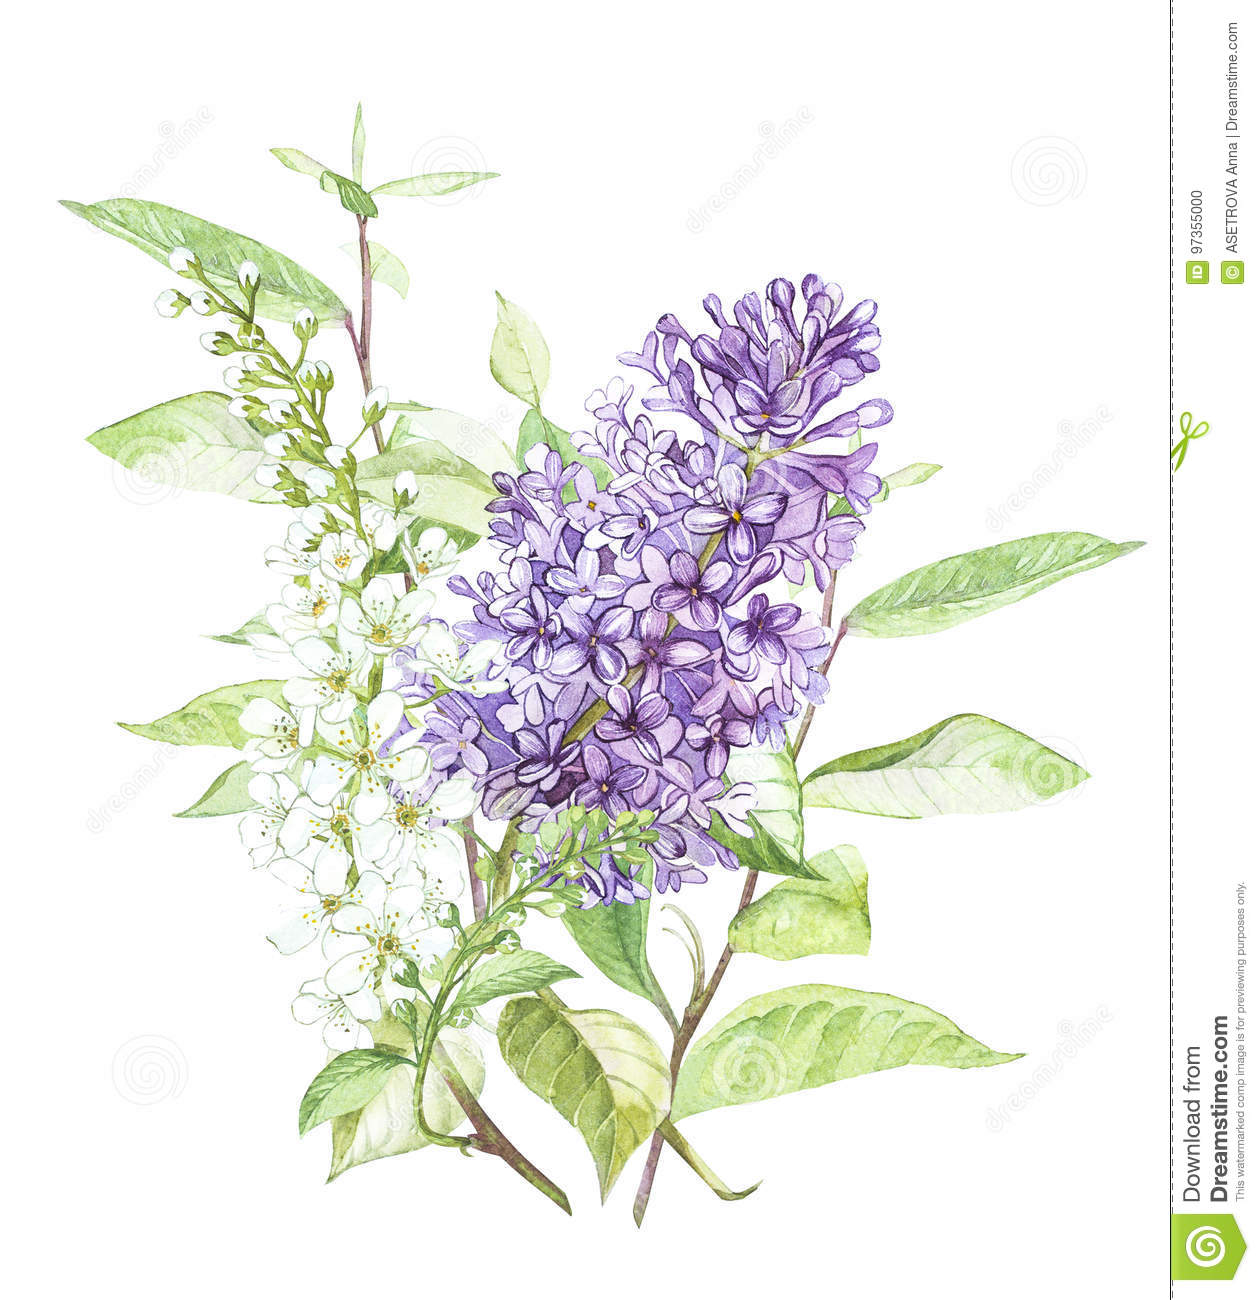 Spring flowers lilac and Bird-cherry tree isolated on white background. Watercolor hand drawn illustration.